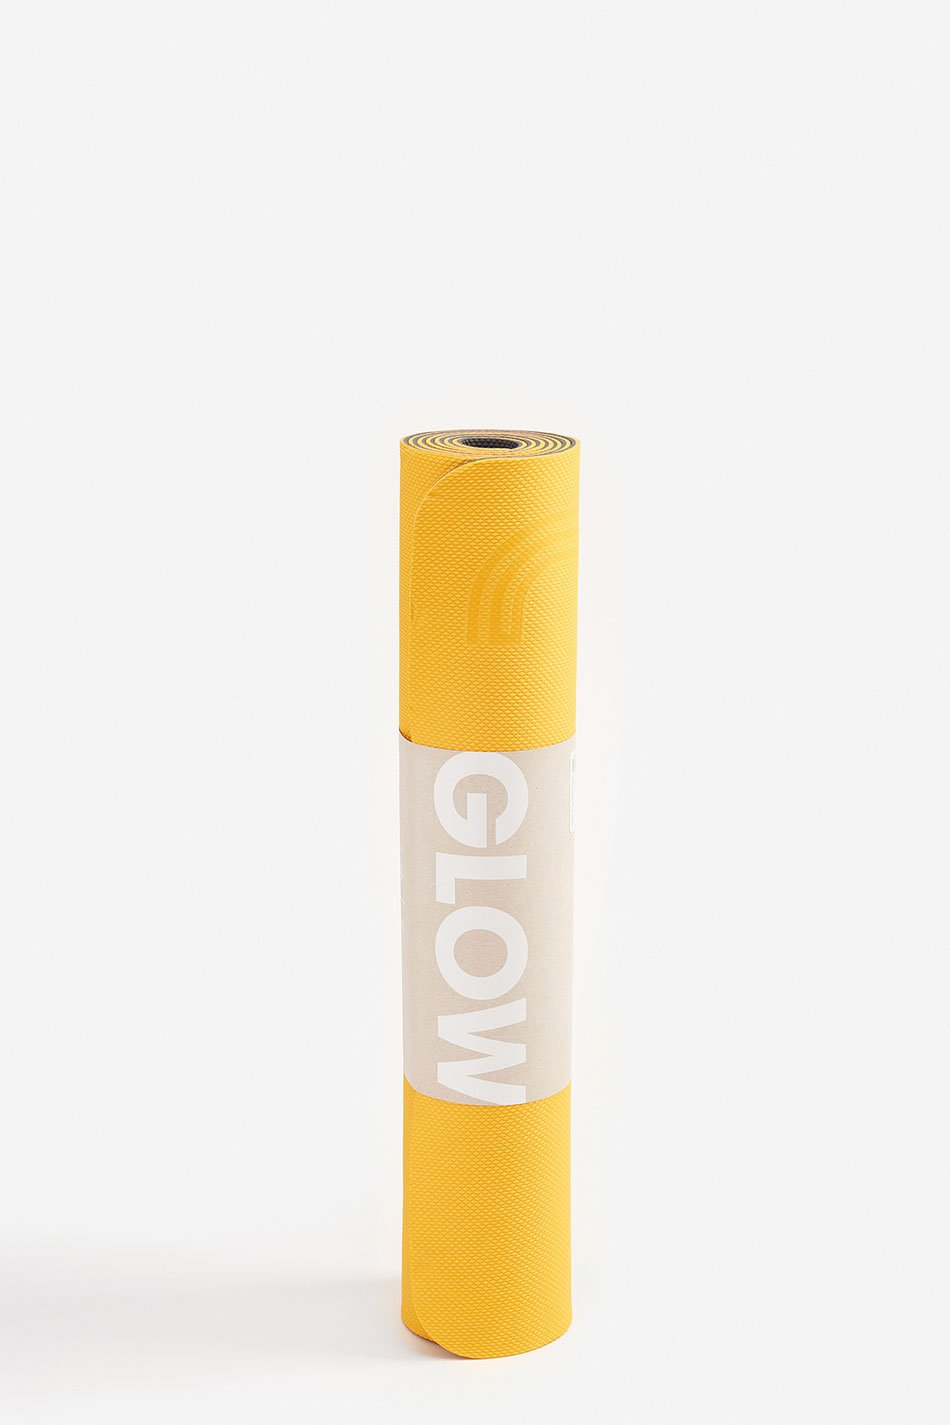 Lole Glow Yoga Mat - Yellow